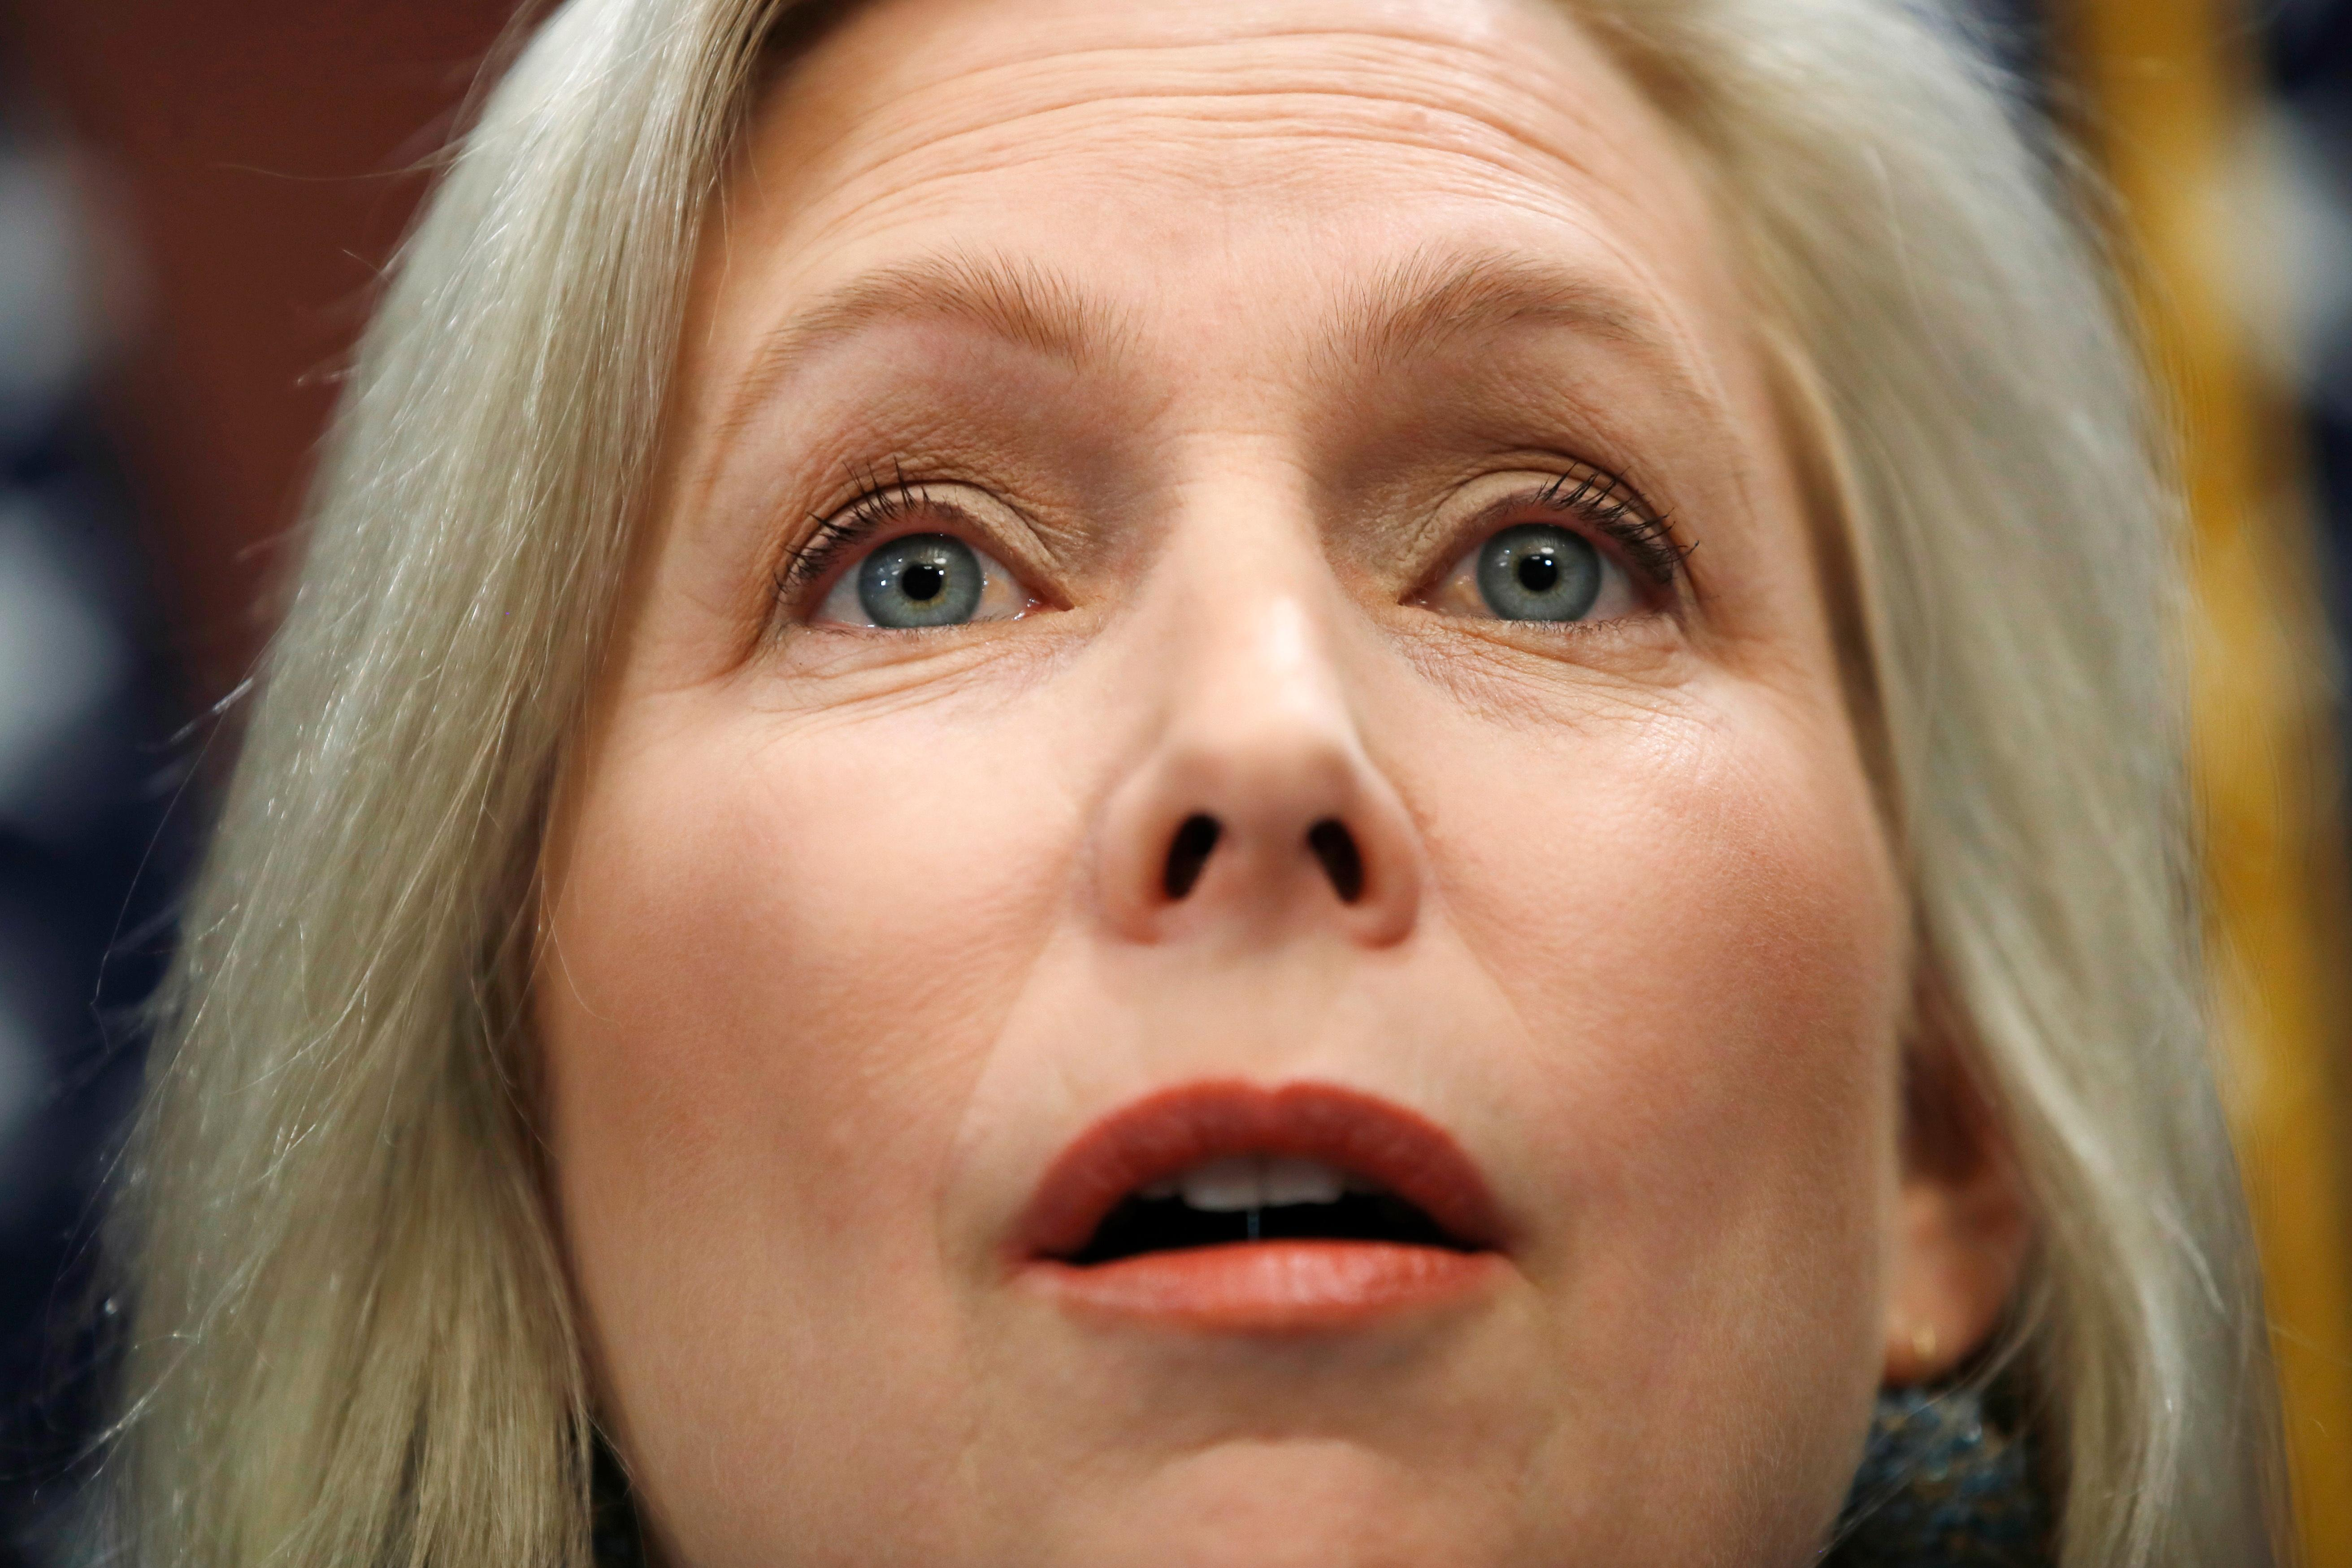 "Sen. Kirsten Gillibrand, D-N.Y., speaks during a news conference, Tuesday, Dec. 12, 2017, on Capitol Hill in Washington. Gillibrand says President Donald Trump's latest tweet about her was a ""sexist smear"" aimed at silencing her voice. (AP Photo/Jacquelyn Martin)"